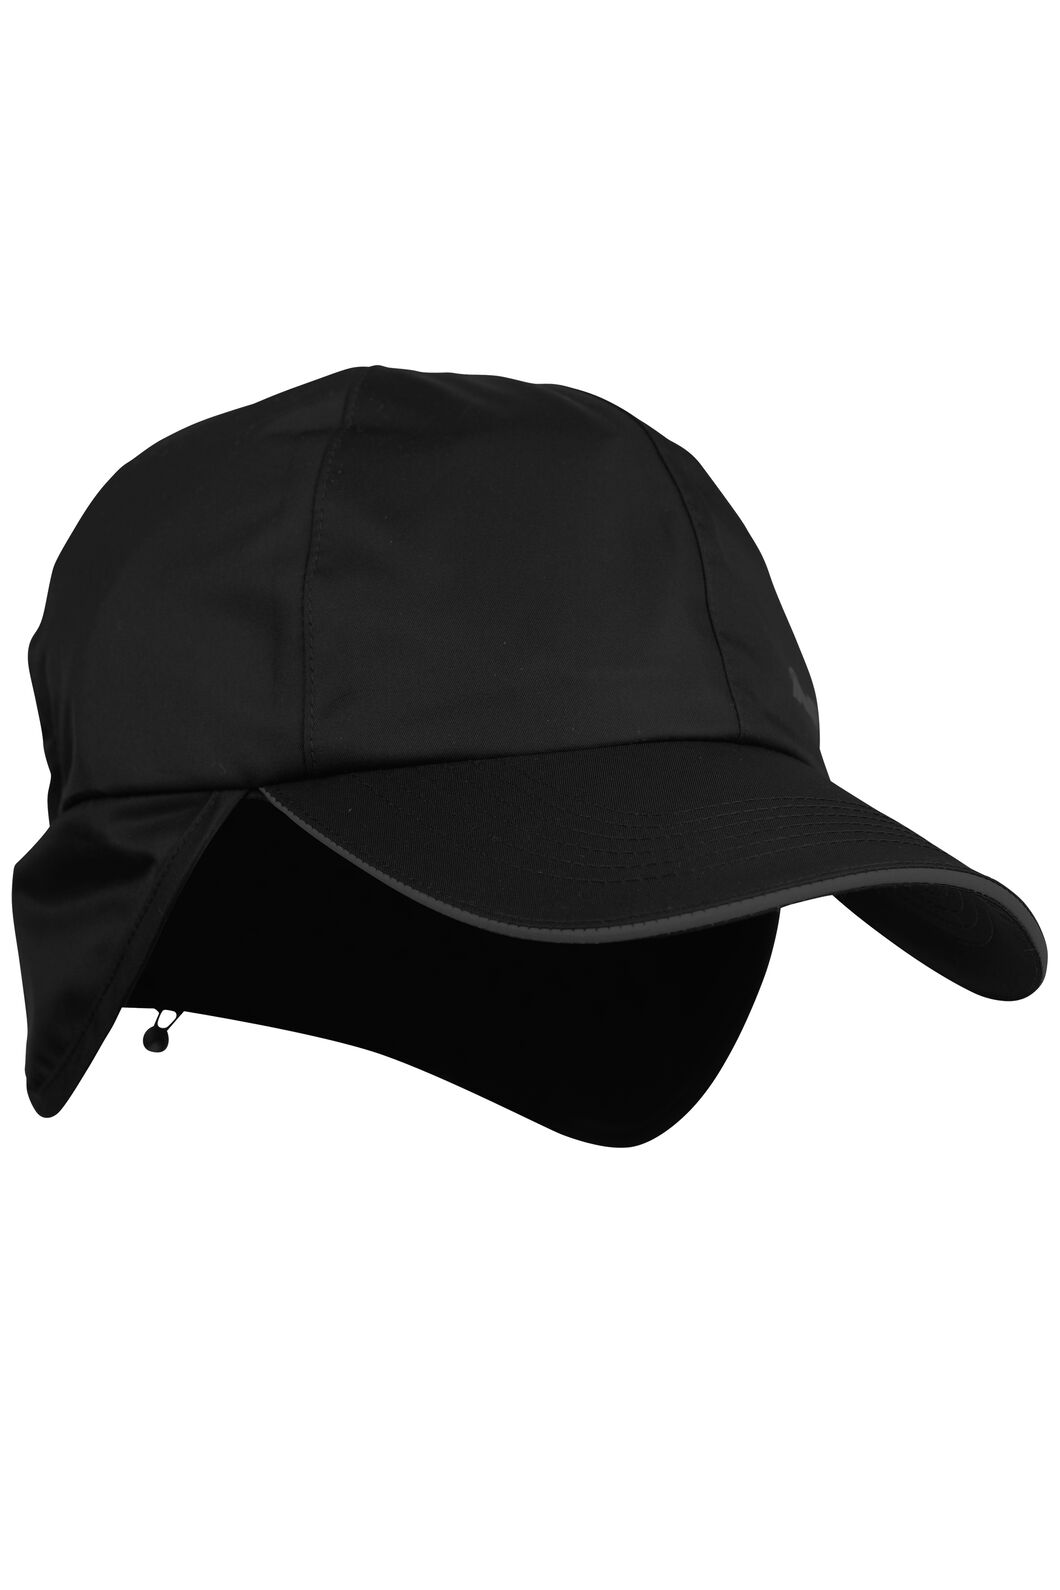 Macpac Waterproof Cap, Black, hi-res